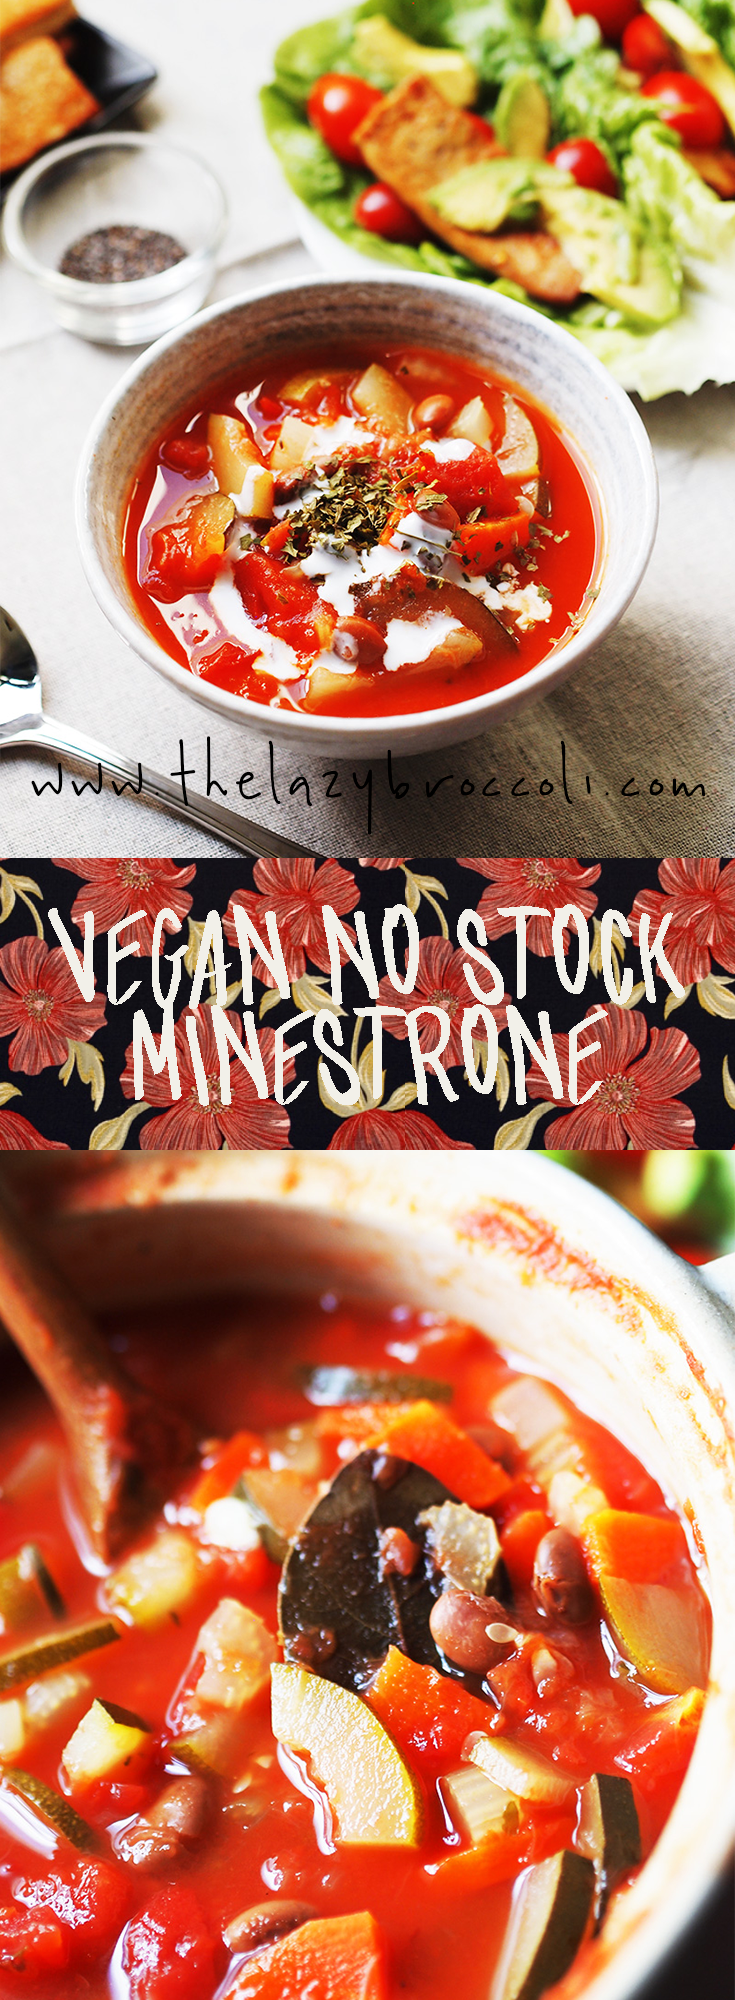 this vegan no stock minestrone is so easy and delicious! #vegan #nostock #minestrone #lowcarb #glutenfree #noonionnogarlic #vegetarian #thelazybroccoli #soup #recipe